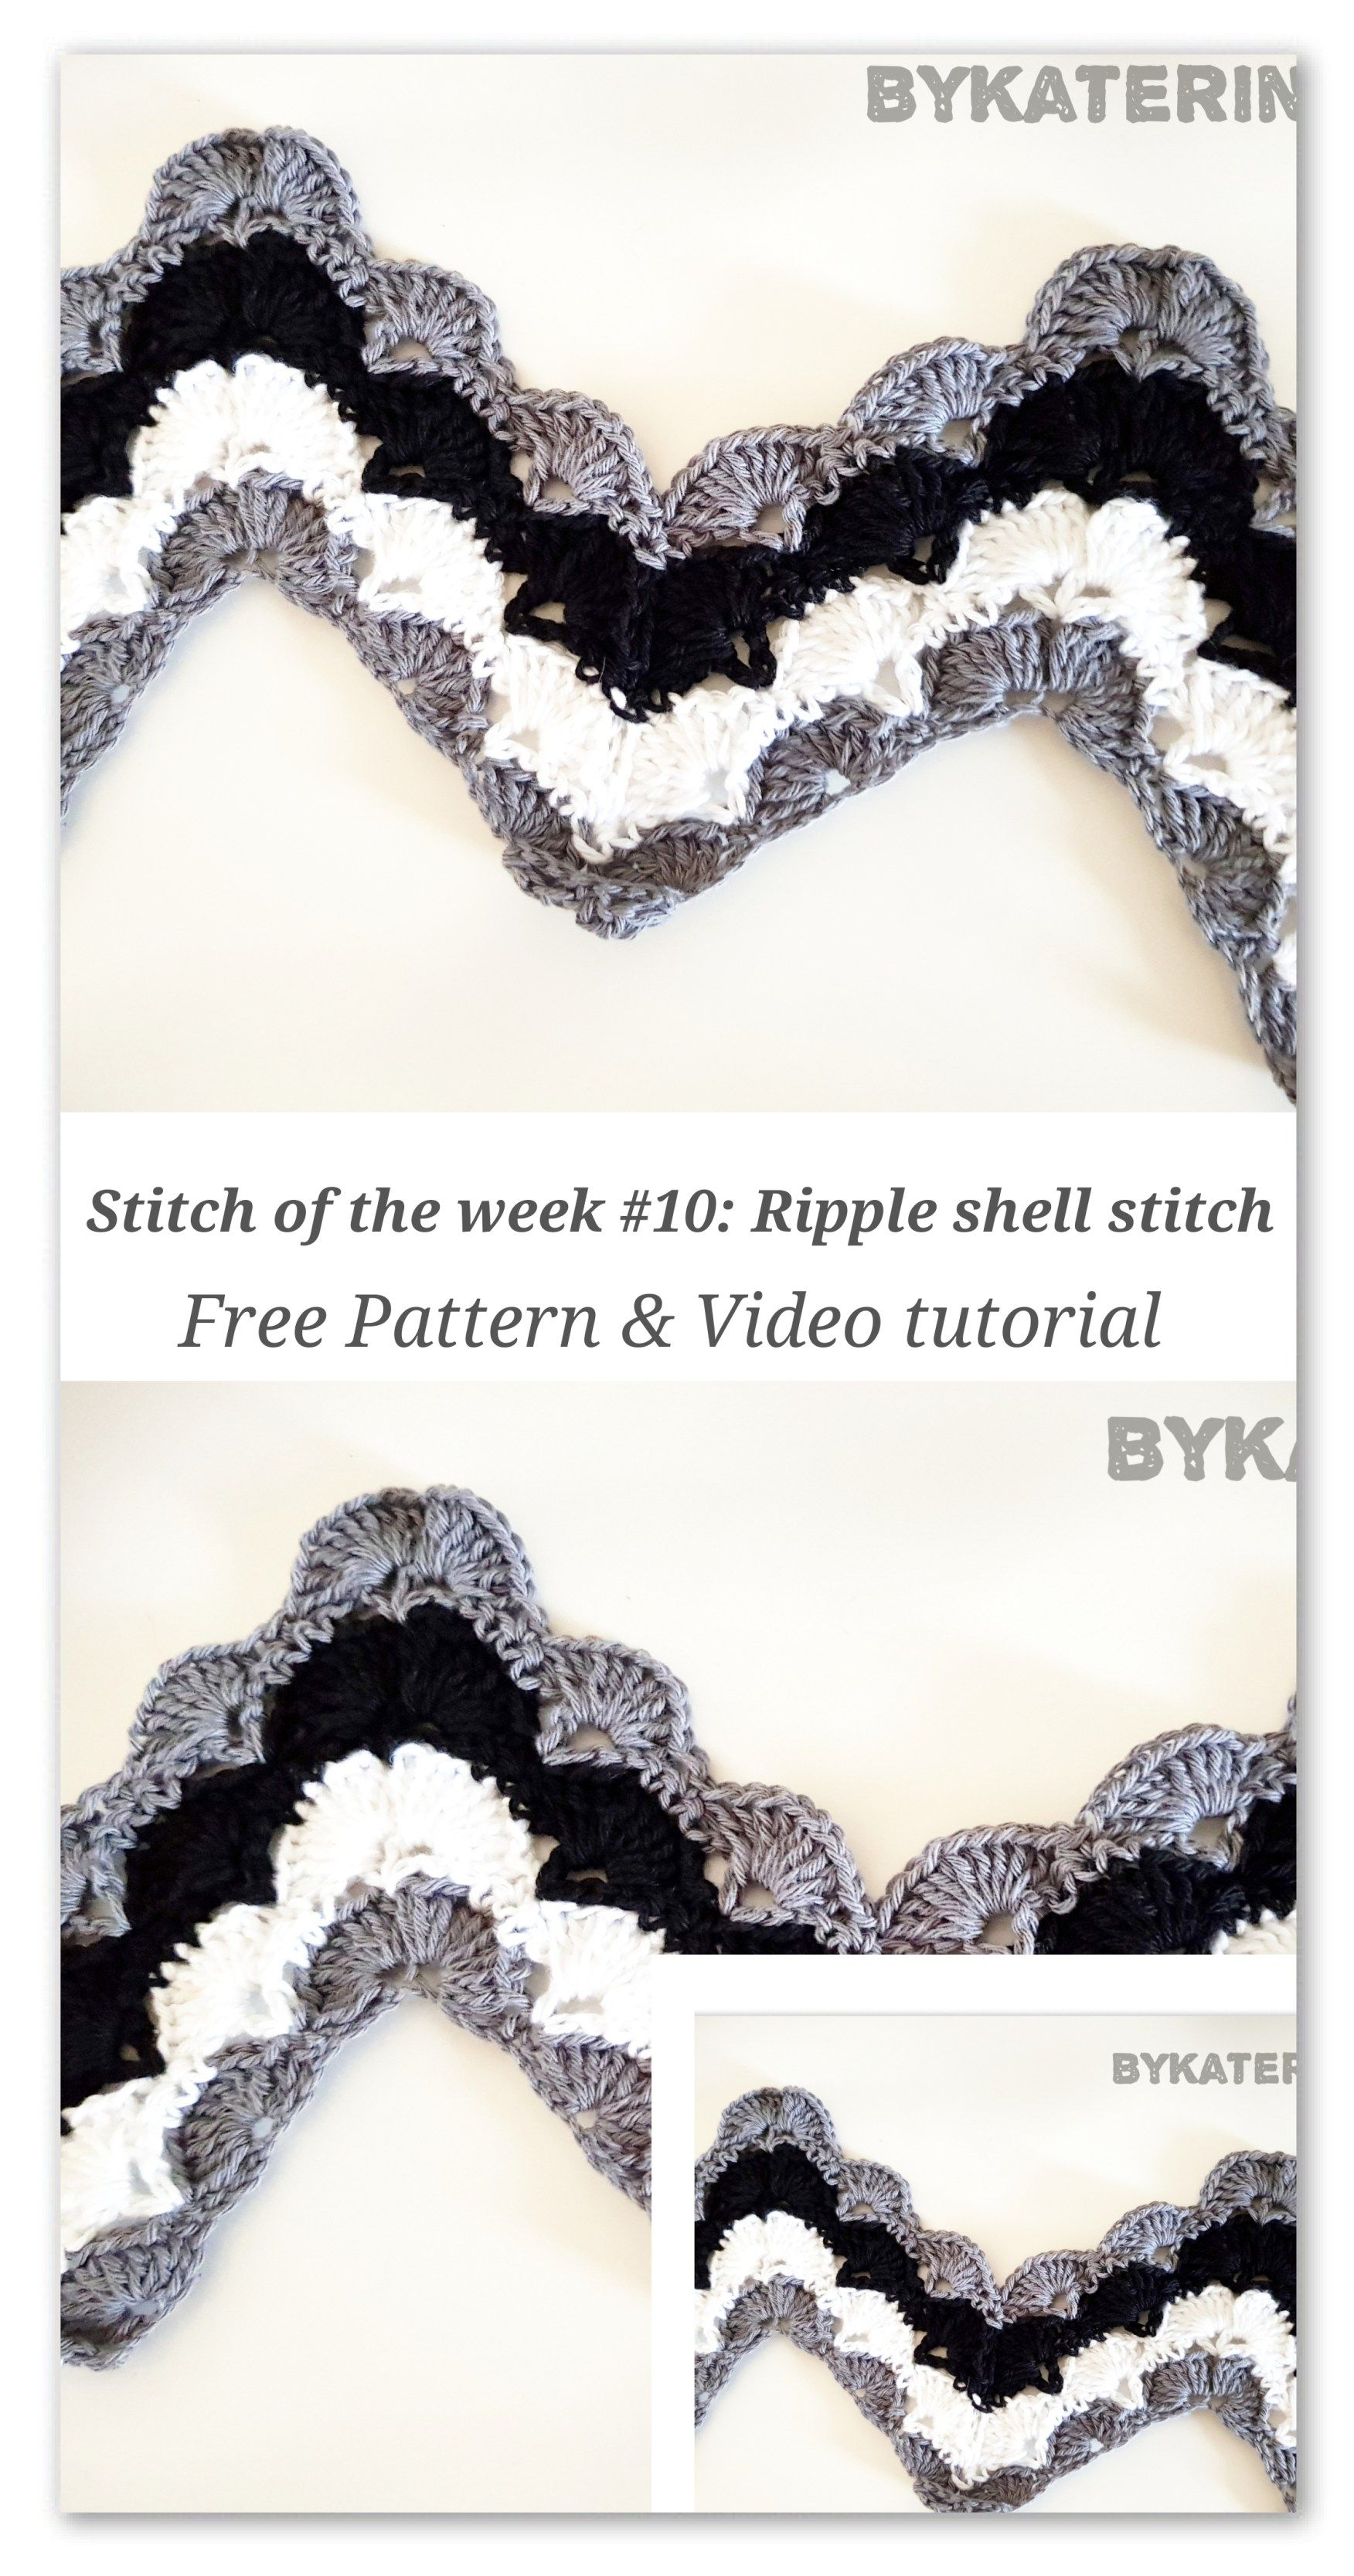 Stitch of the week #10: Ripple shell stitch | crochet | Pinterest ...